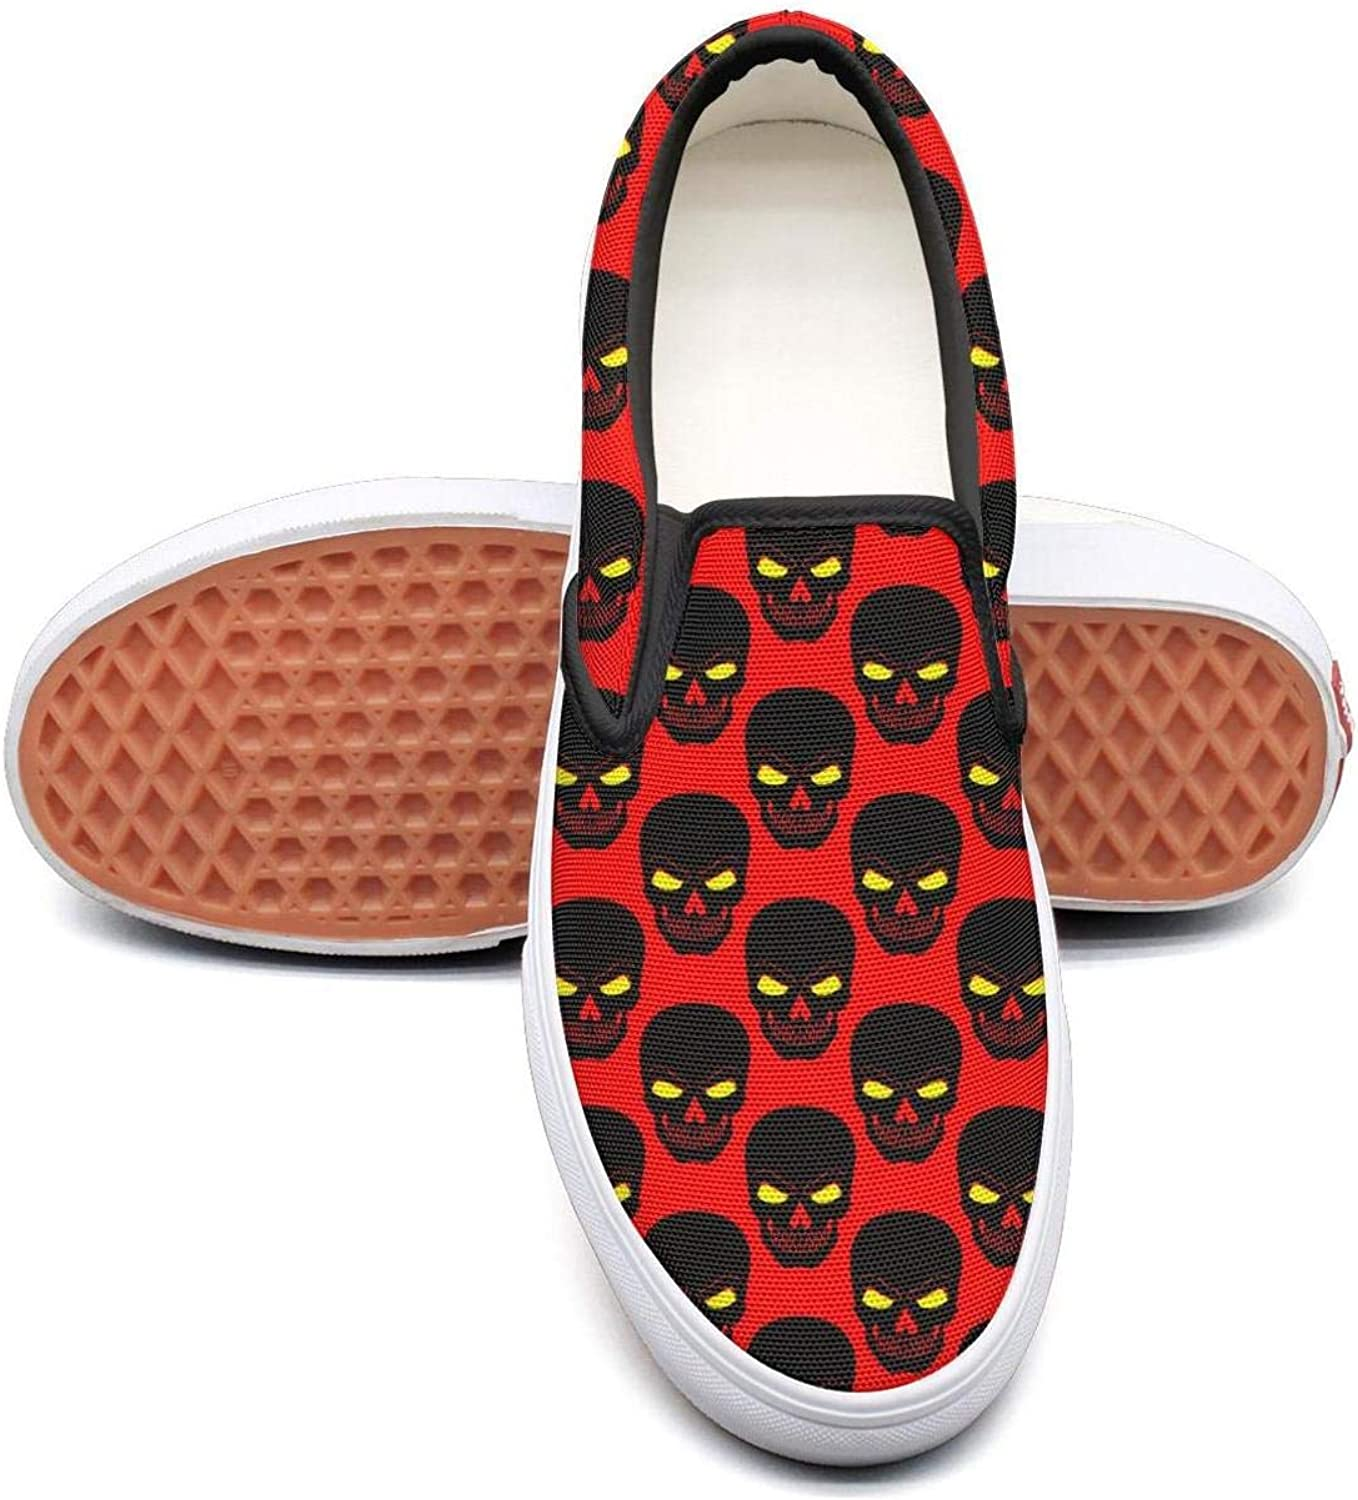 Angrily Skulls Slip On Superior Comfort Loafers Canvas shoes for Women Round Toe